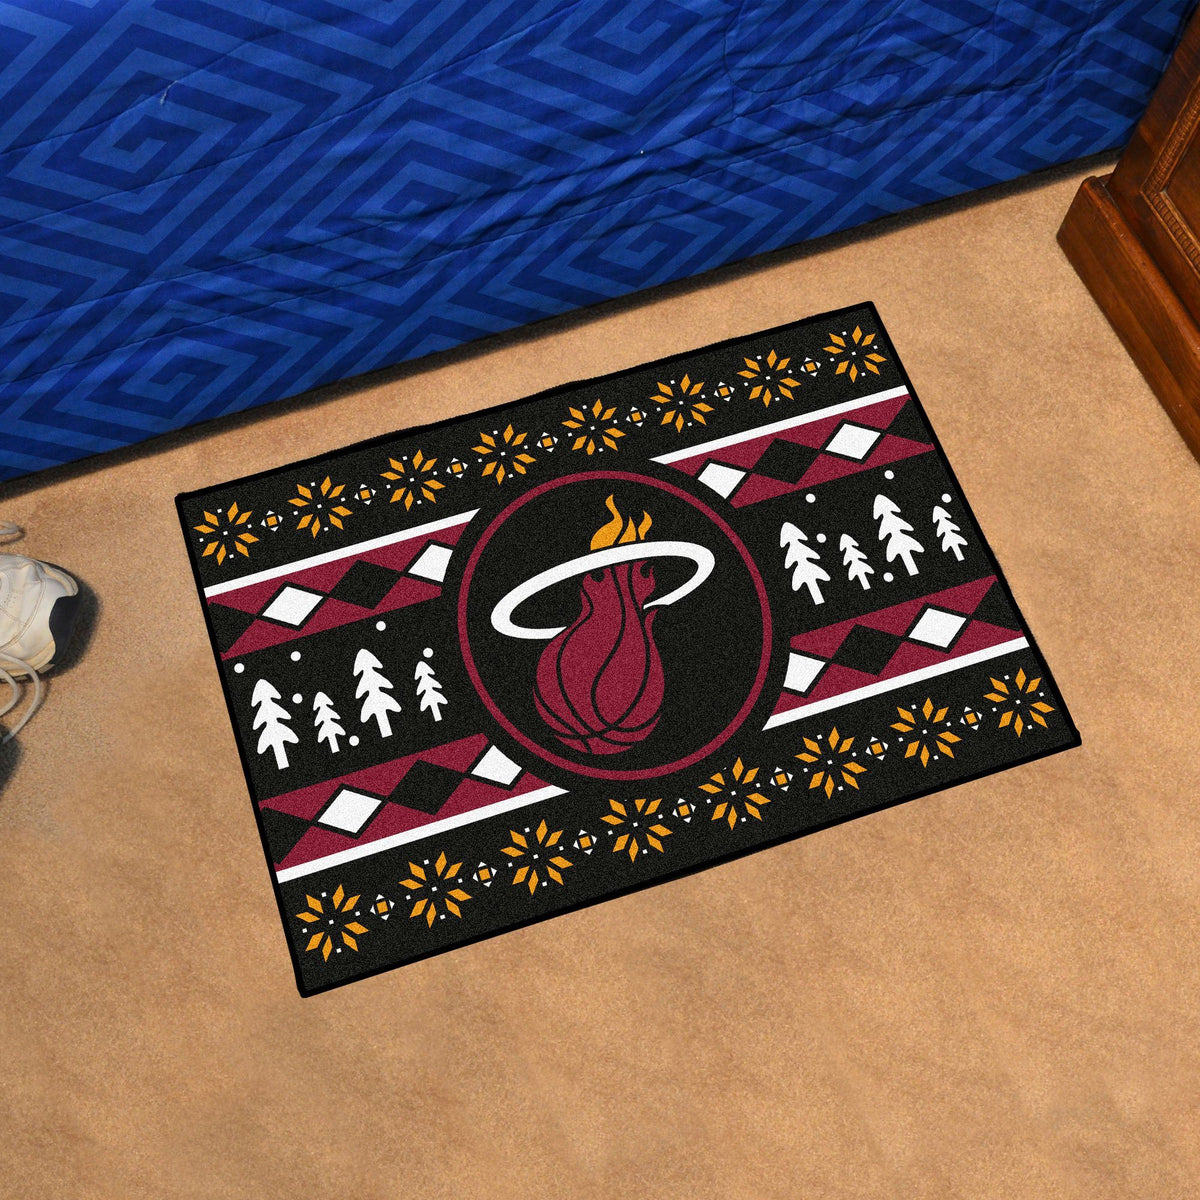 NBA - Holiday Sweater Starter Mat NBA Mats, Rectangular Mats, Holiday Sweater Starter Mat, NBA, Home Fan Mats Miami Heat